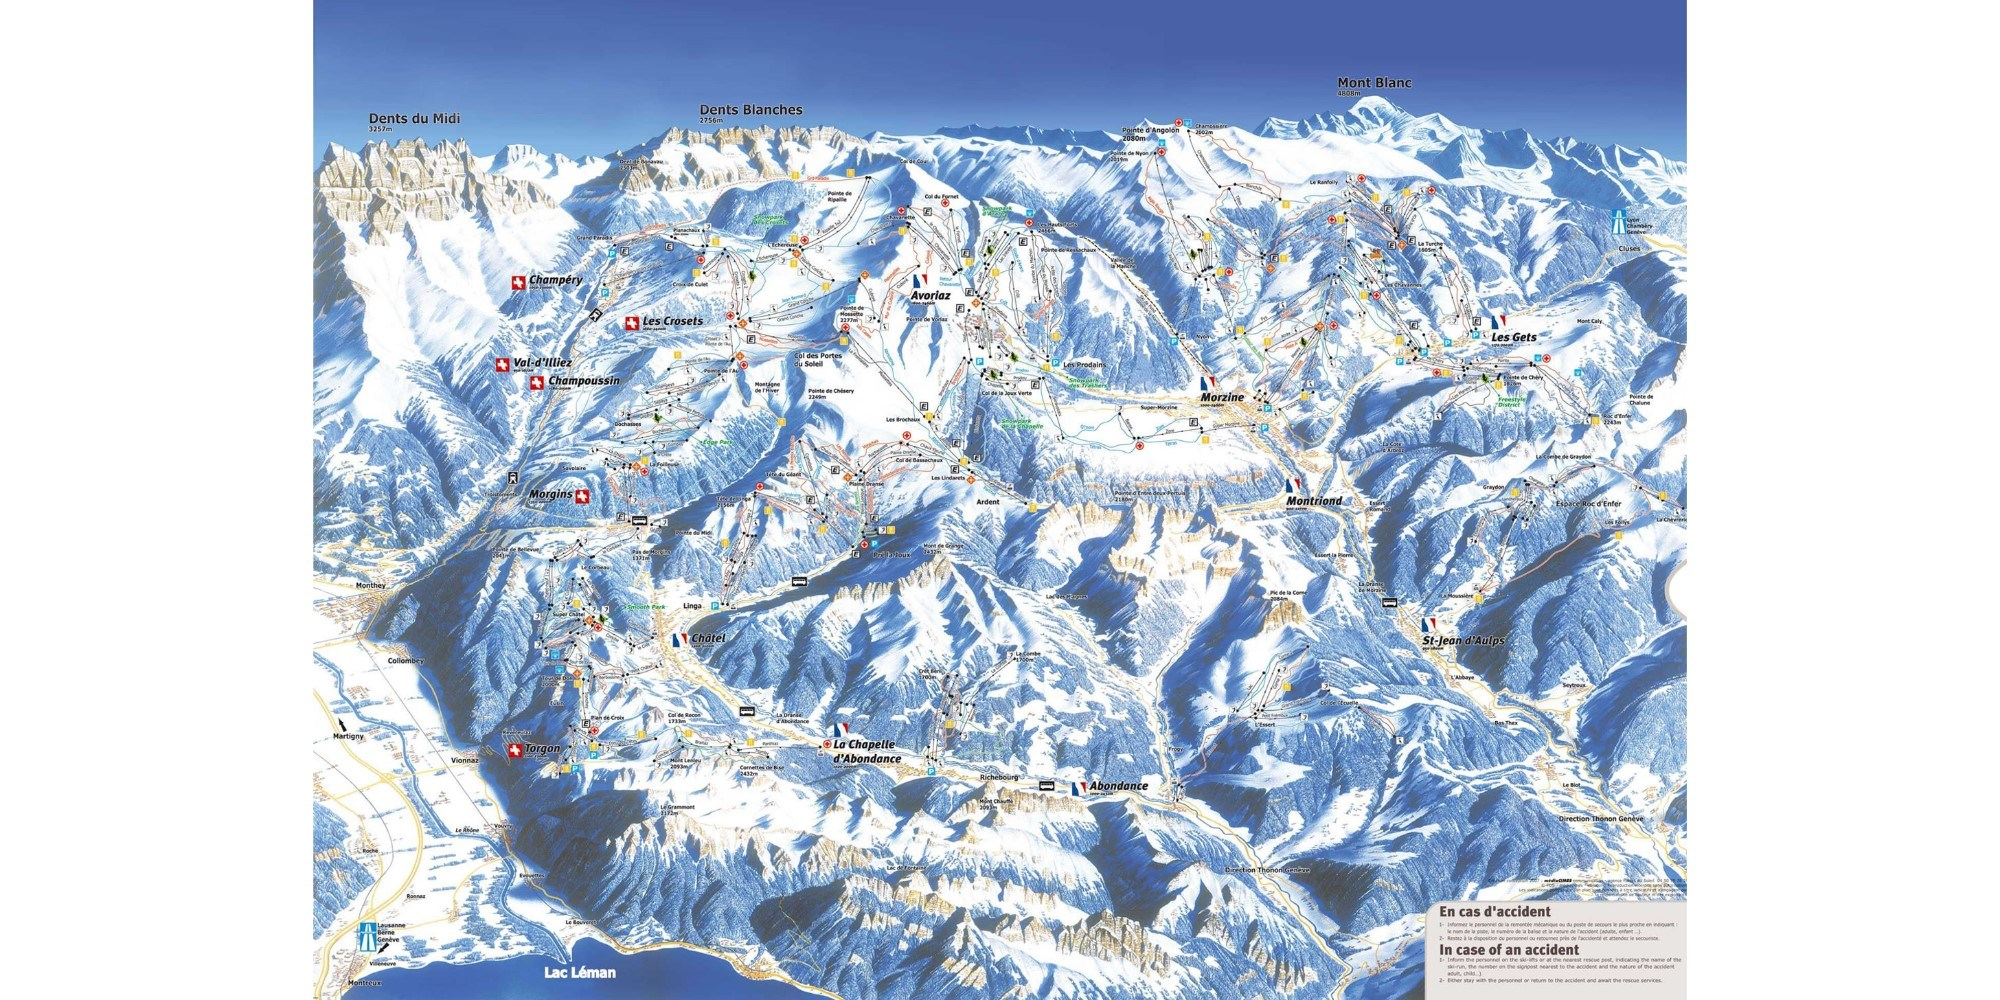 Piste map for Morzine